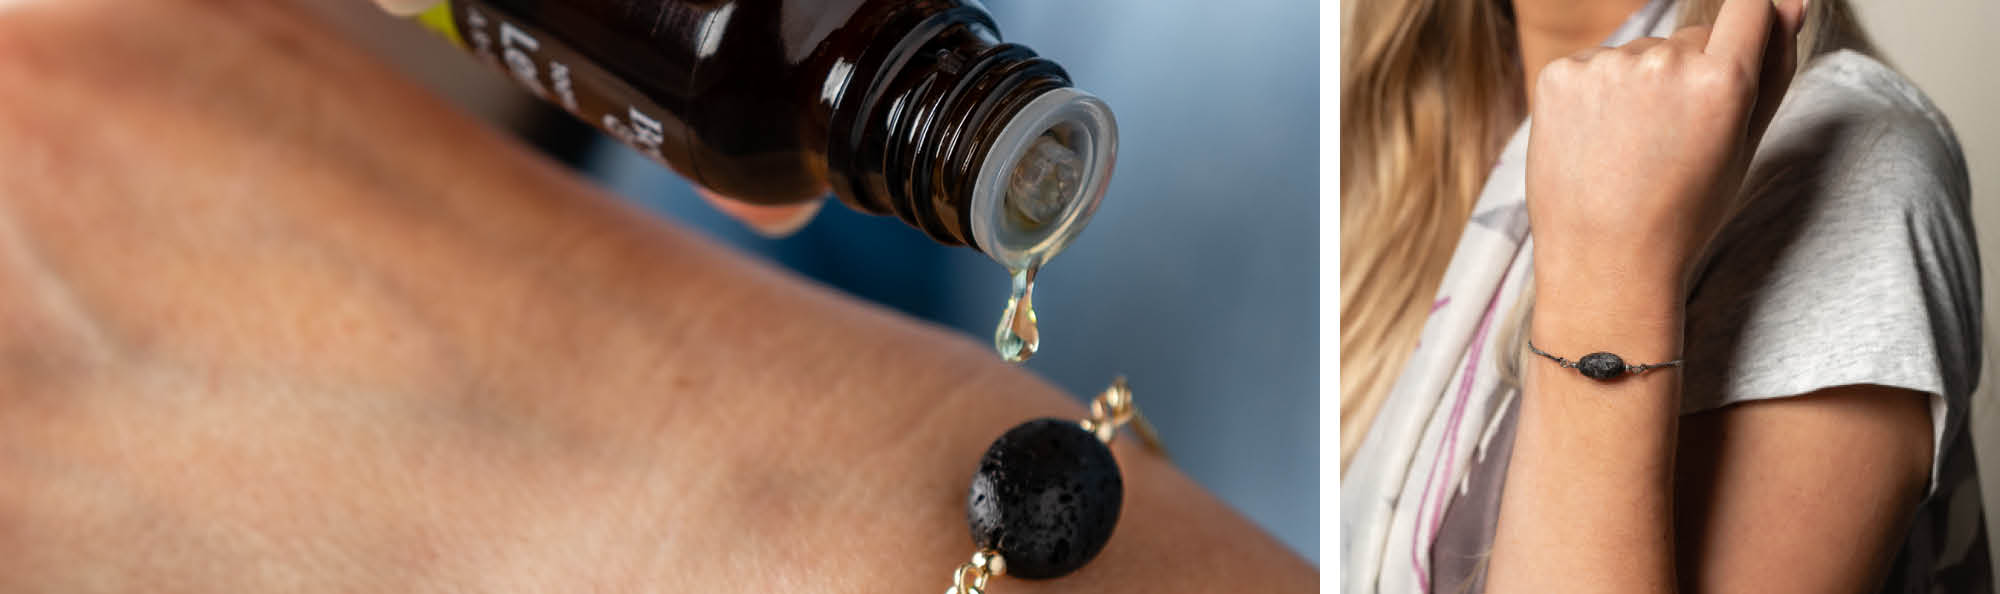 a woman pouring oil on her lava bead bracelet and another woman showing off that bracelet